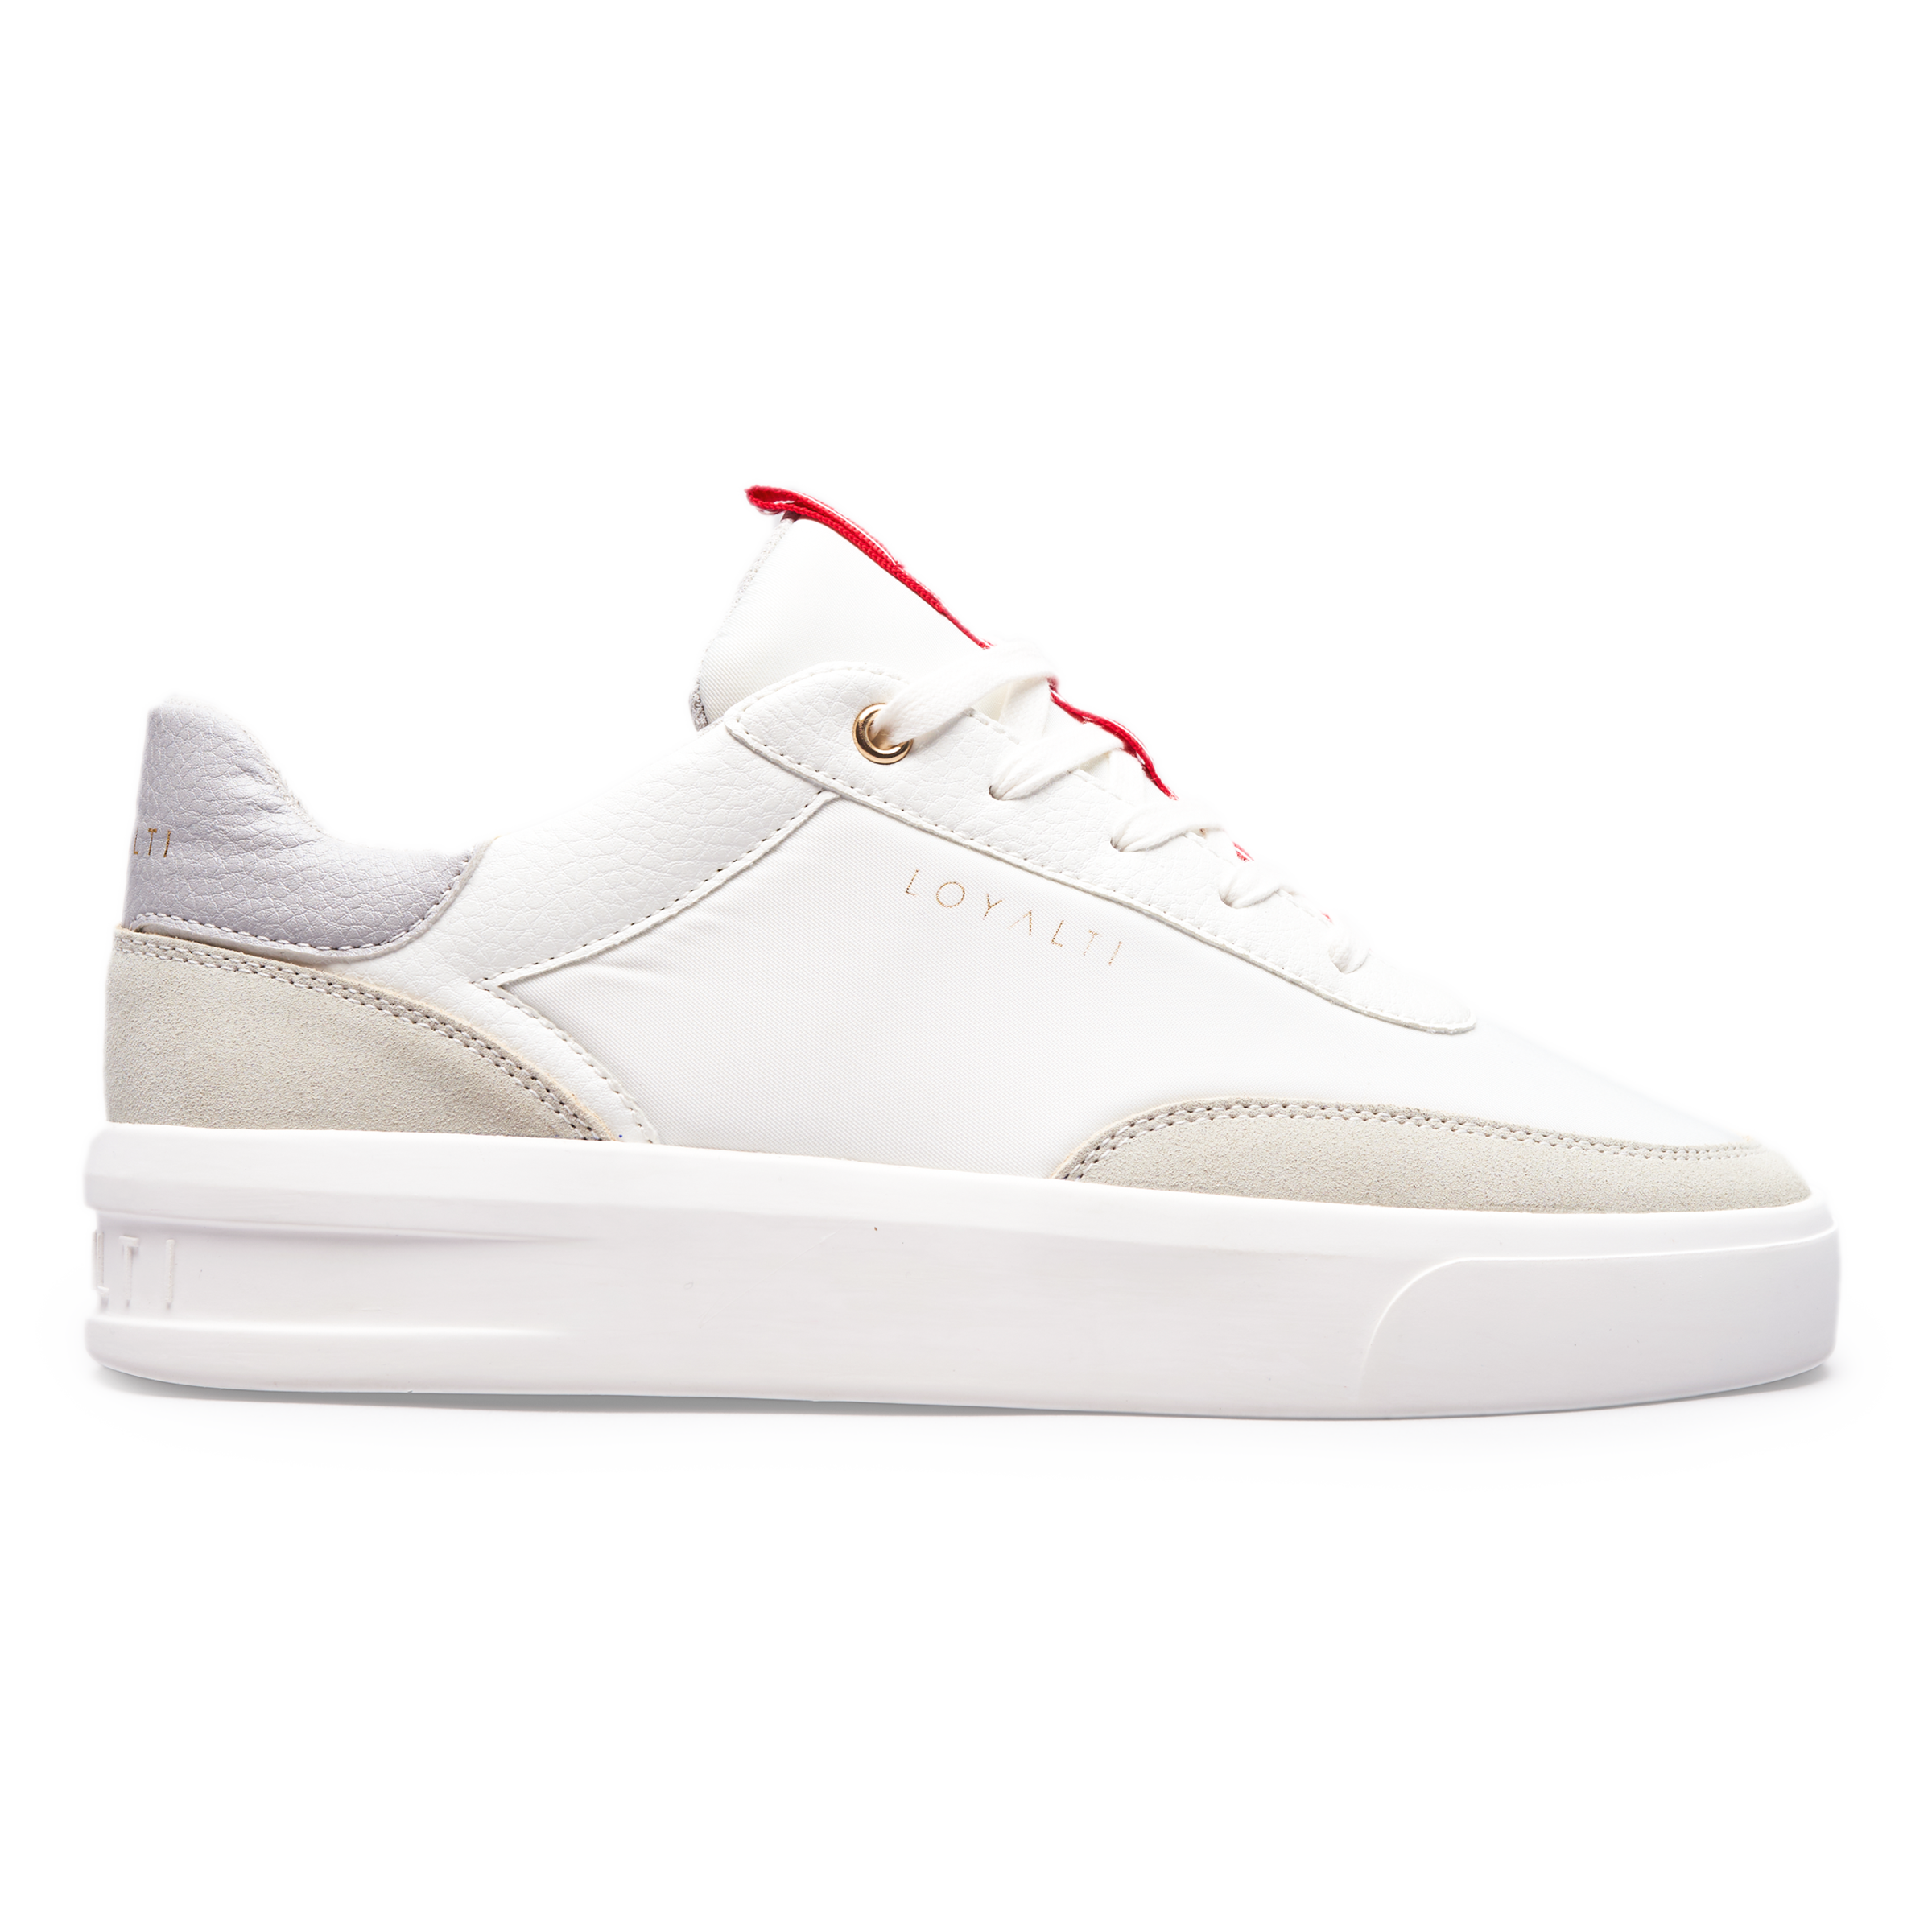 Deuces Trainer - White / Light Grey